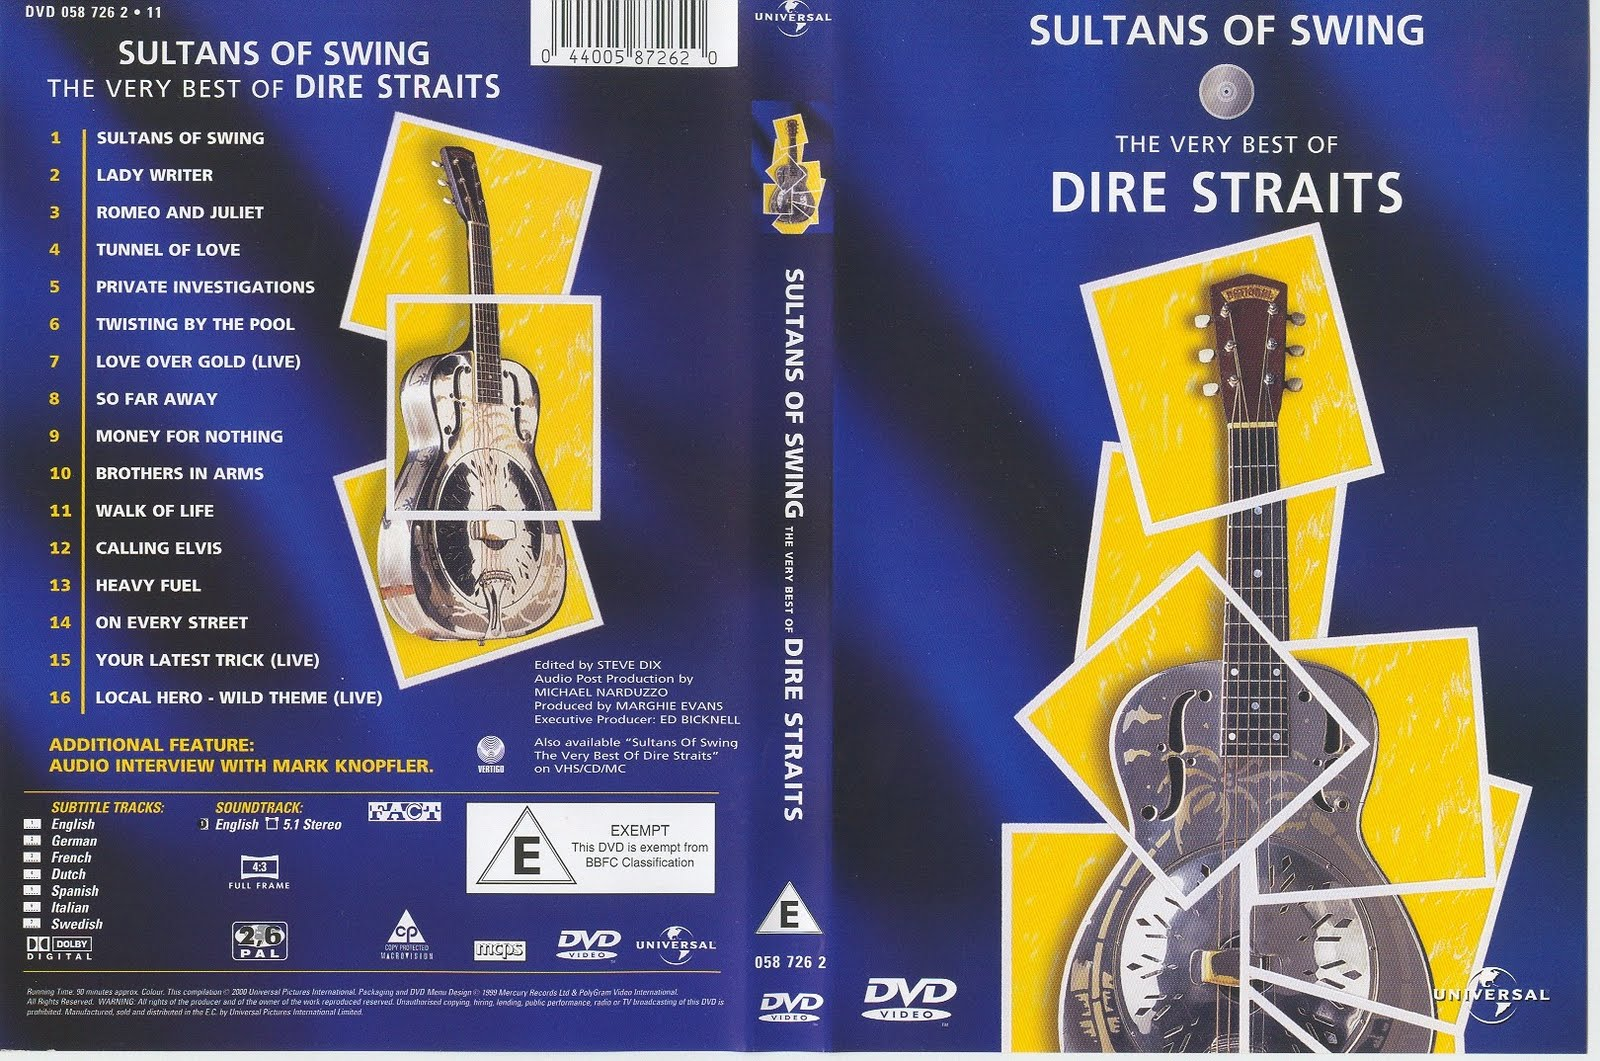 02sultans of swing - 4 9